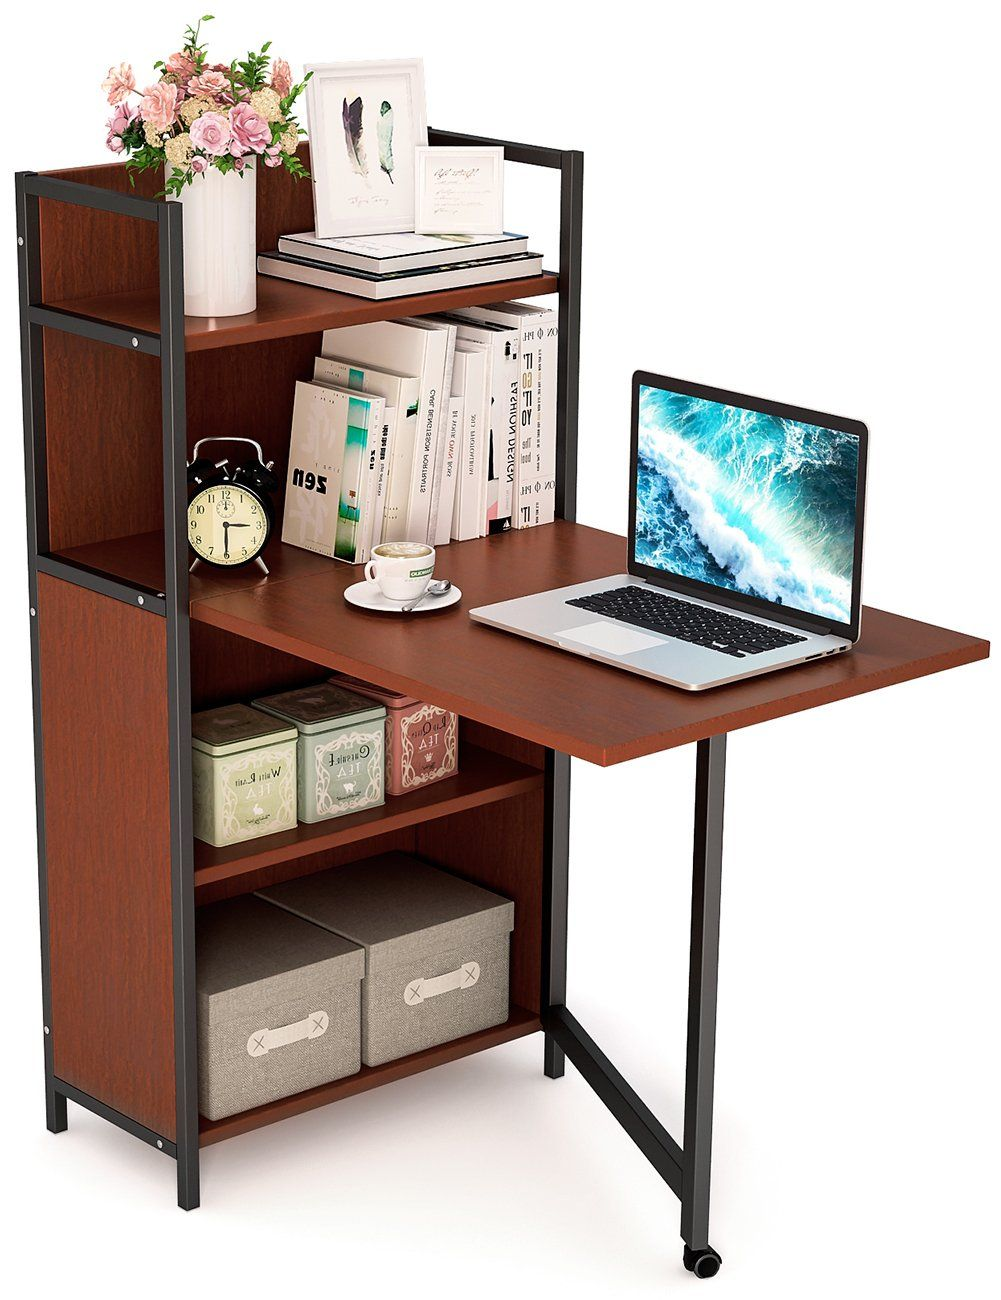 Tribesigns Folding Computer Desk With Bookshelves Pc Laptop Study Writing Desk With Storage Shelve Desks For Small Spaces Bookshelf Desk Folding Computer Desk